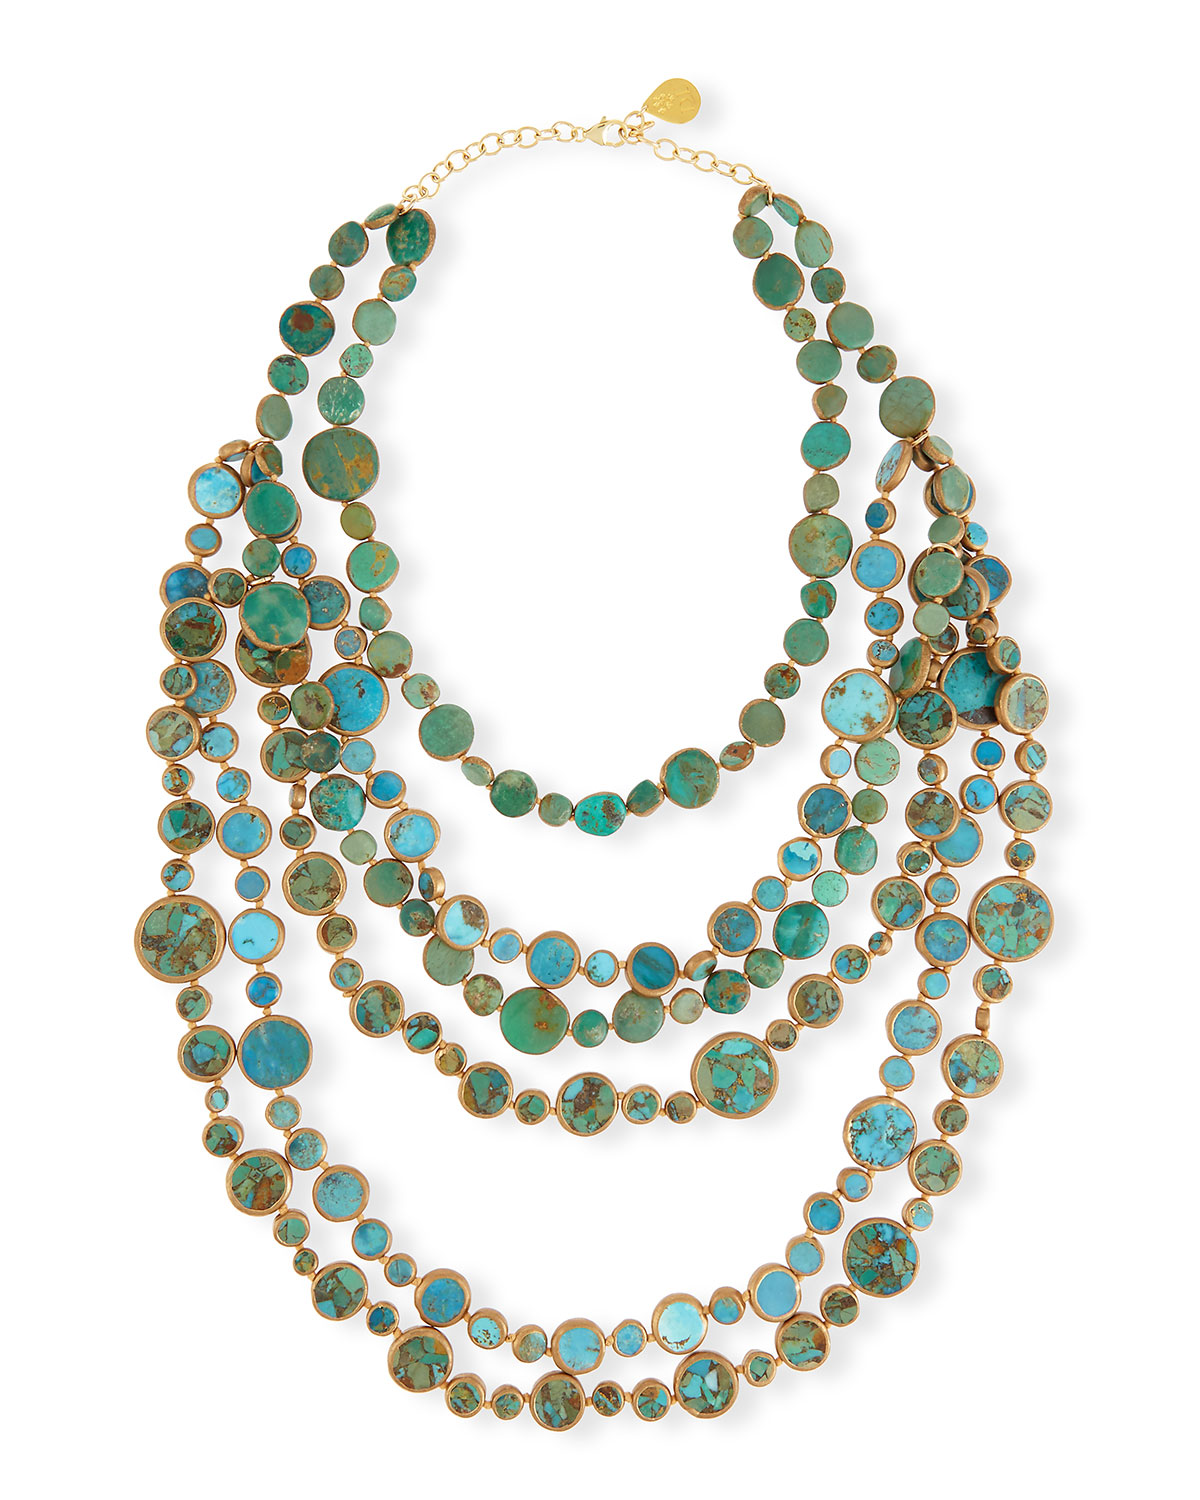 Turquoise Multi-Strand Necklace - Devon Leigh